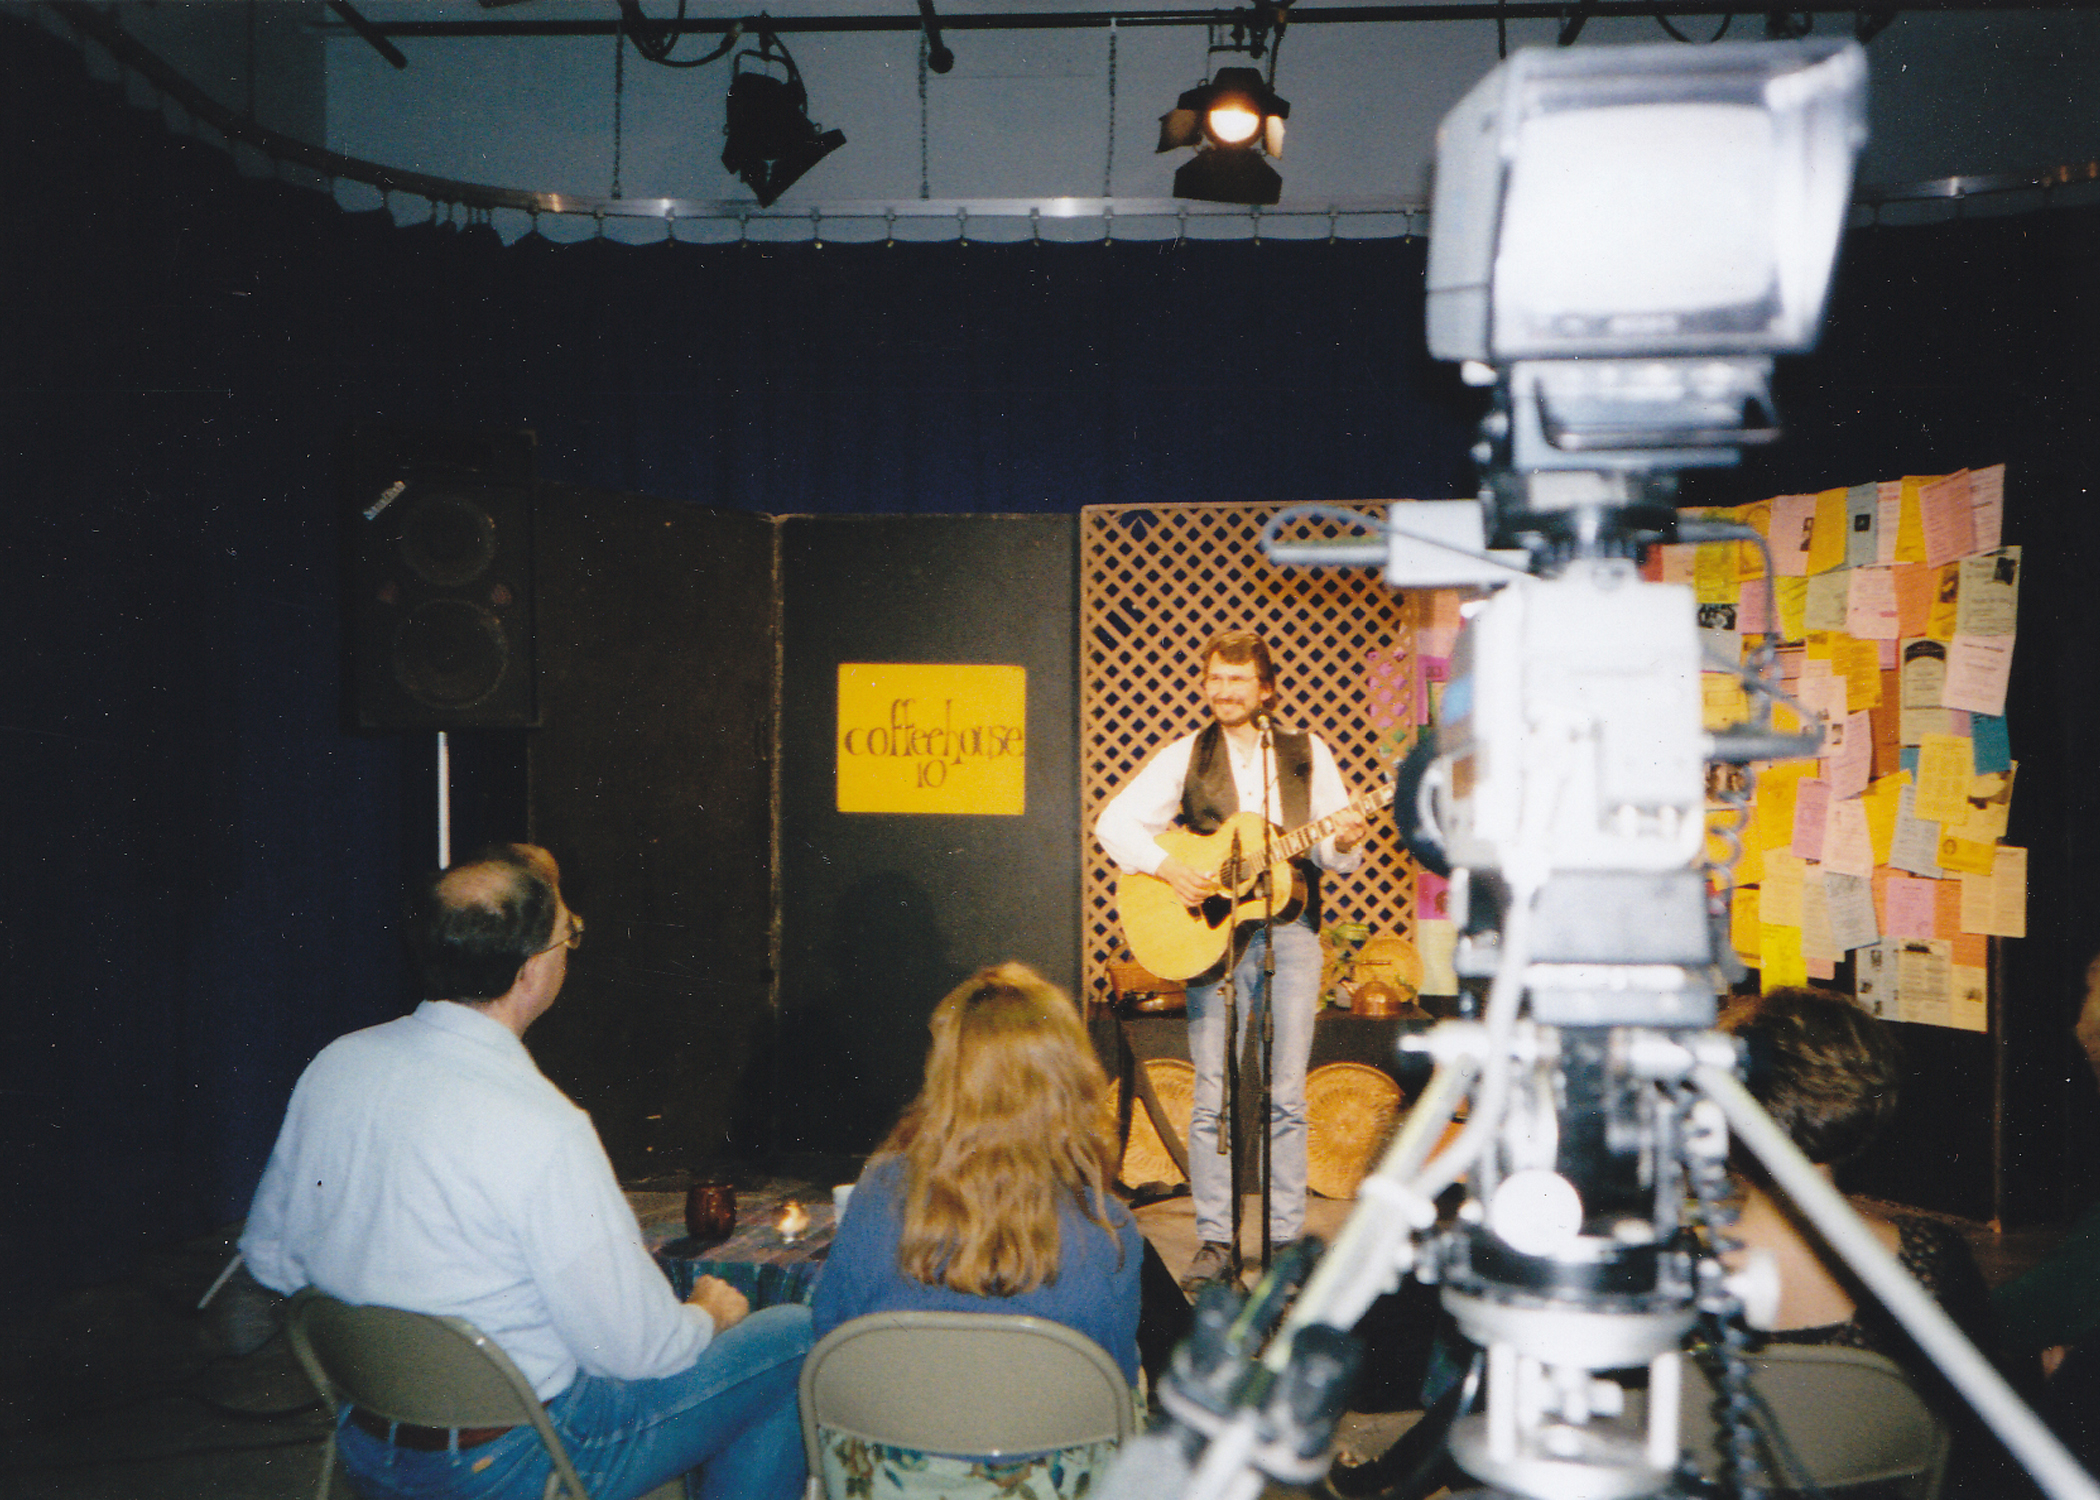 1997_05 Coffeehouse 10, Washington.jpg